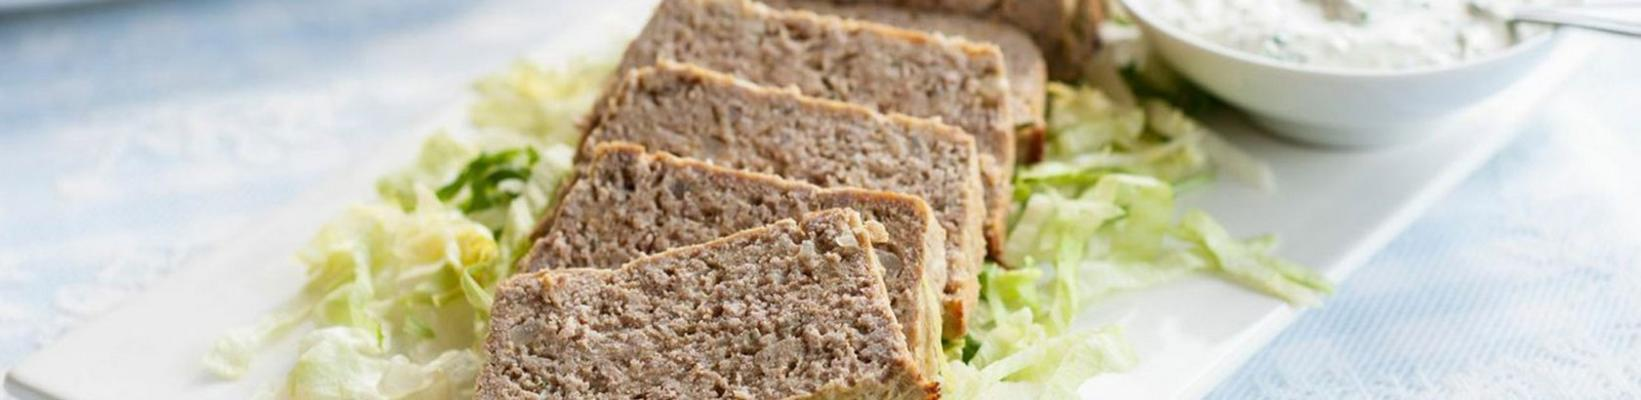 meatloaf with yoghurt sauce